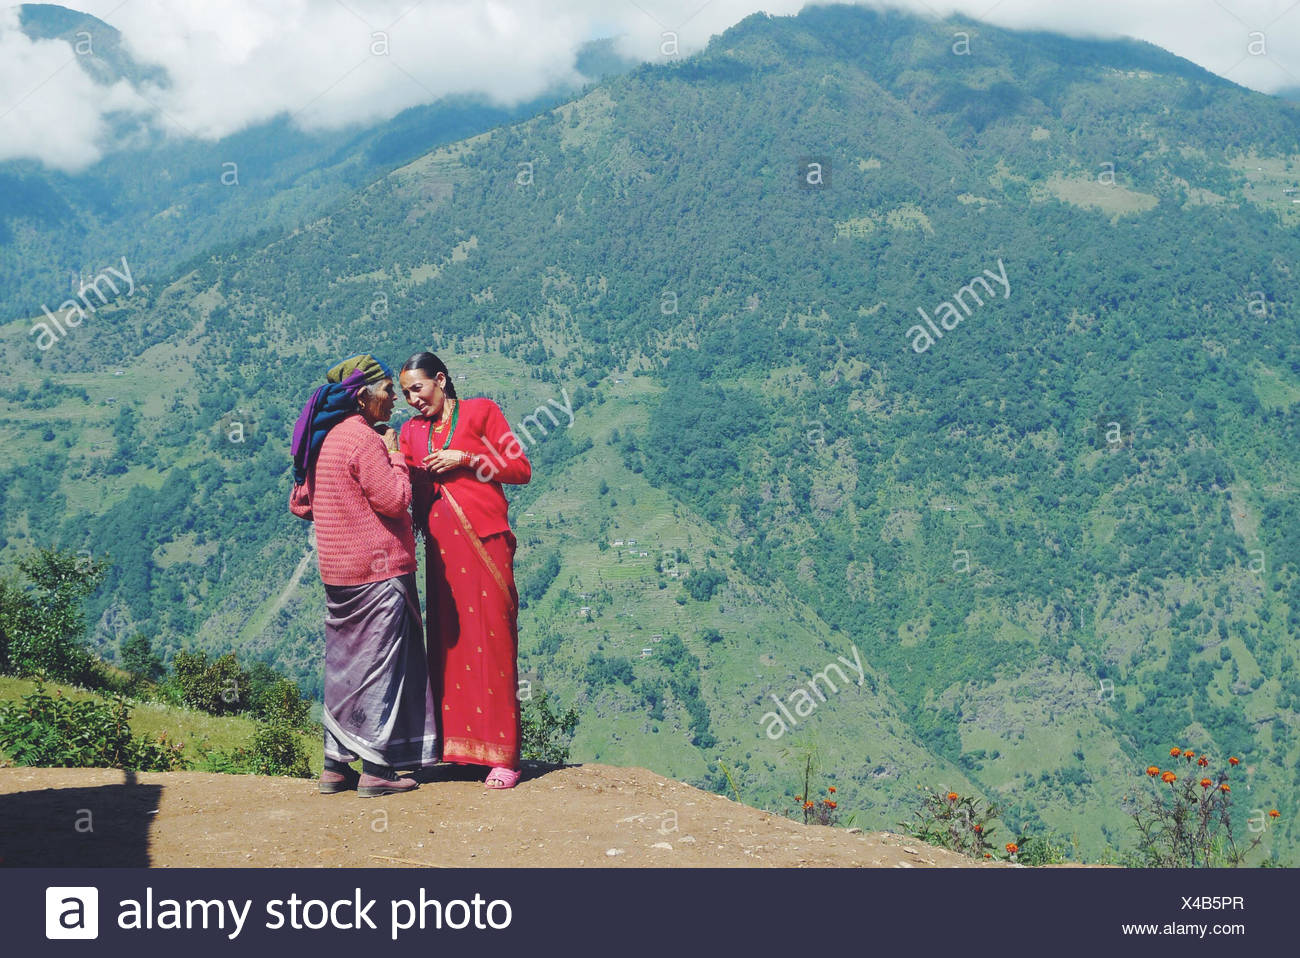 Nepal, Women standing and talking in mountains - Stock Image